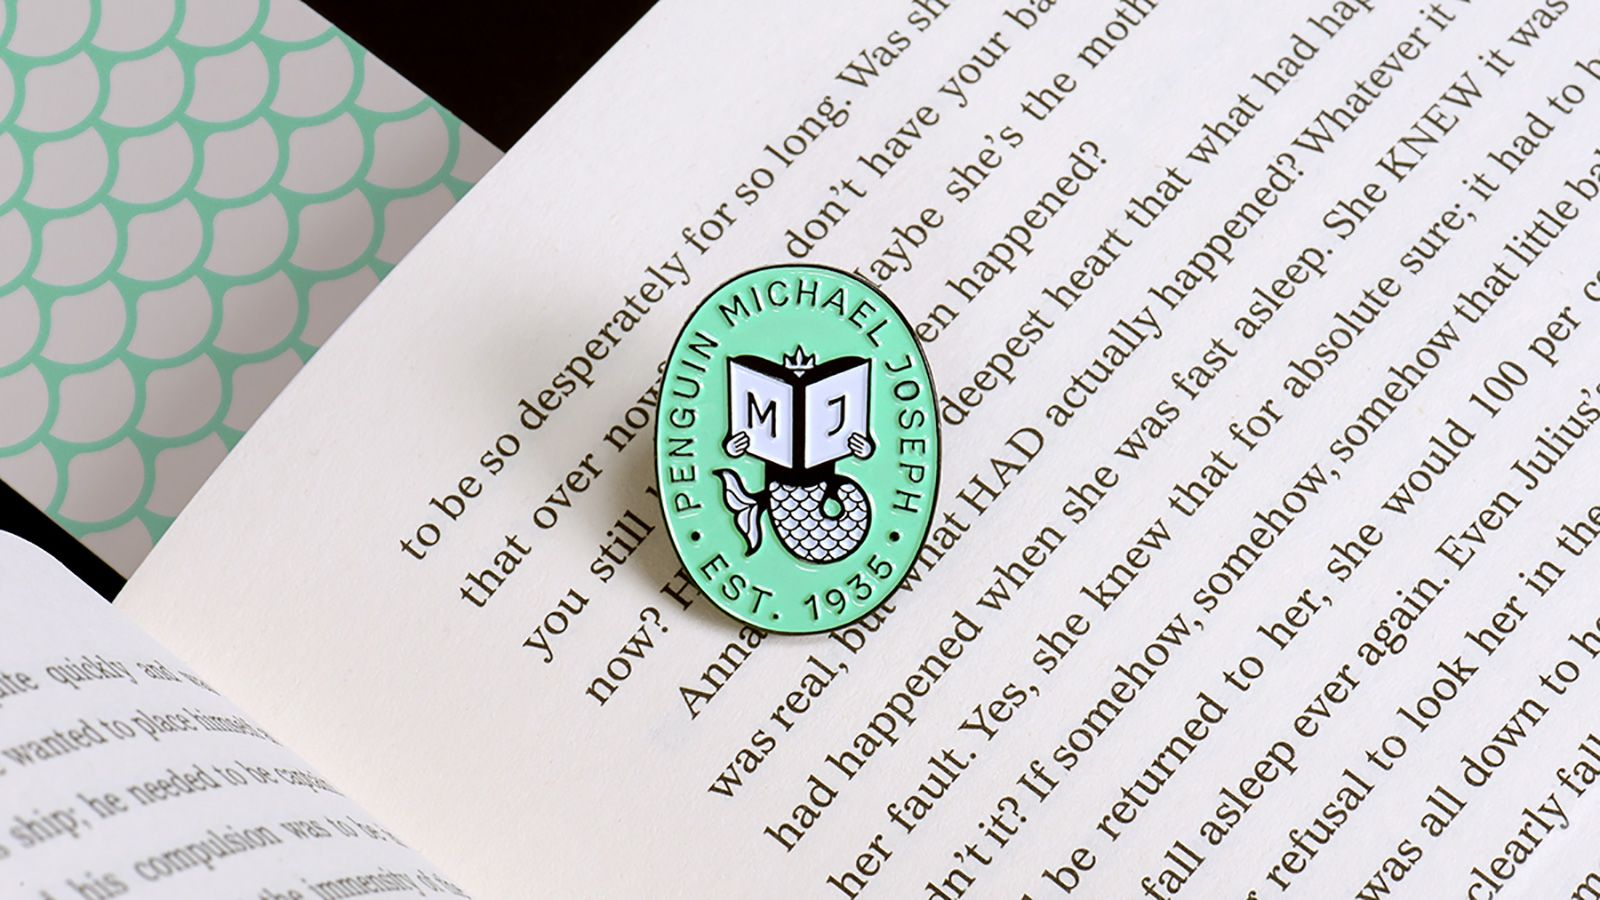 A badge sitting on a printed book.